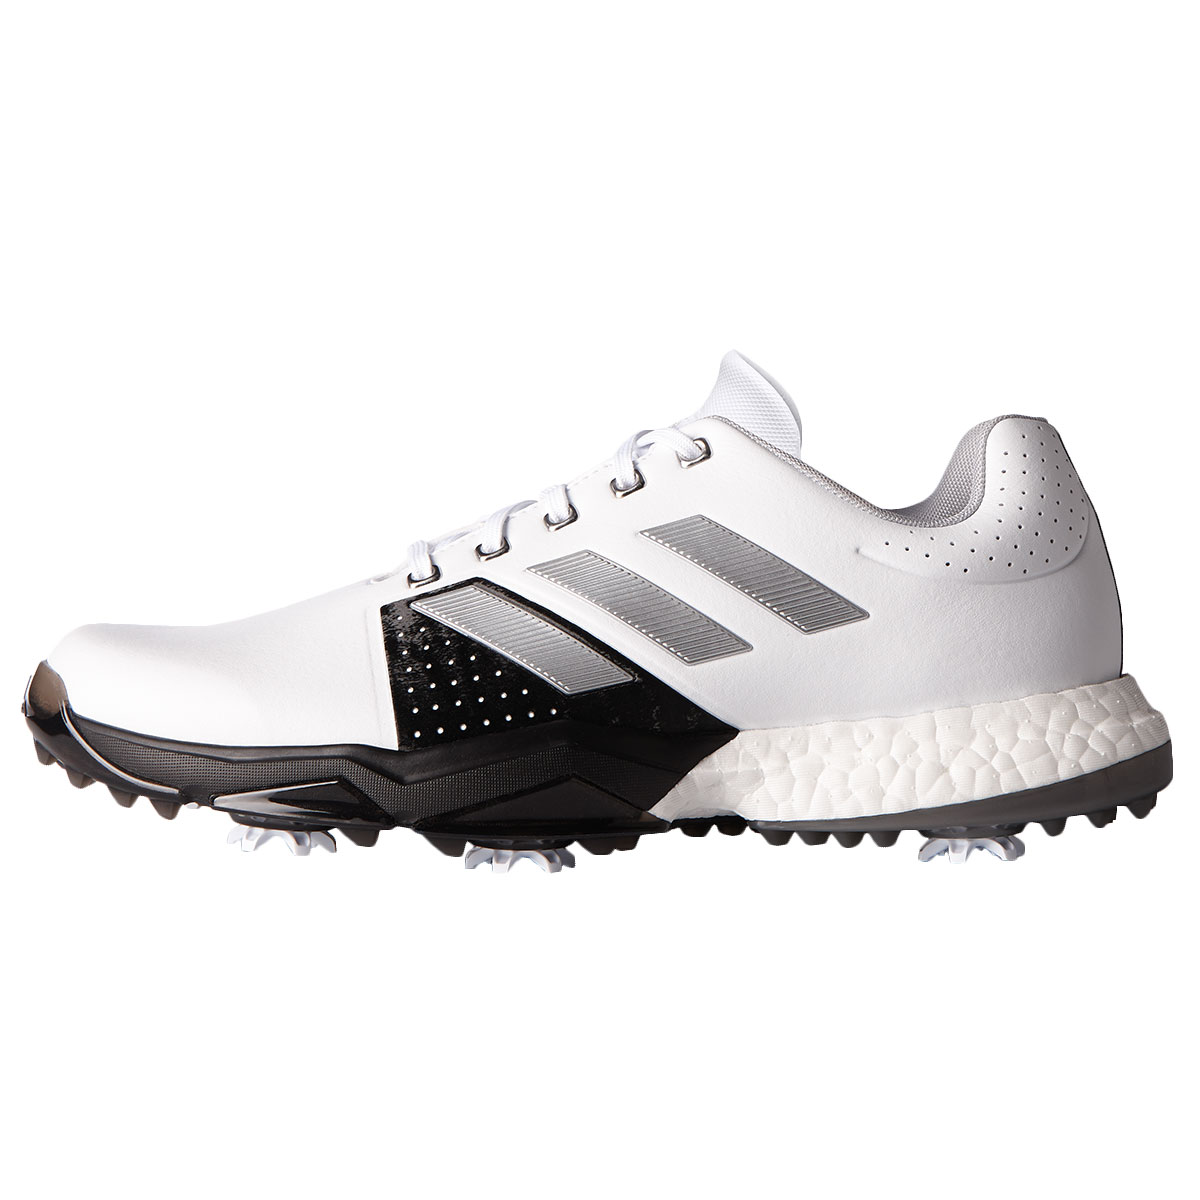 Adidas Golf Shoes No Spikes